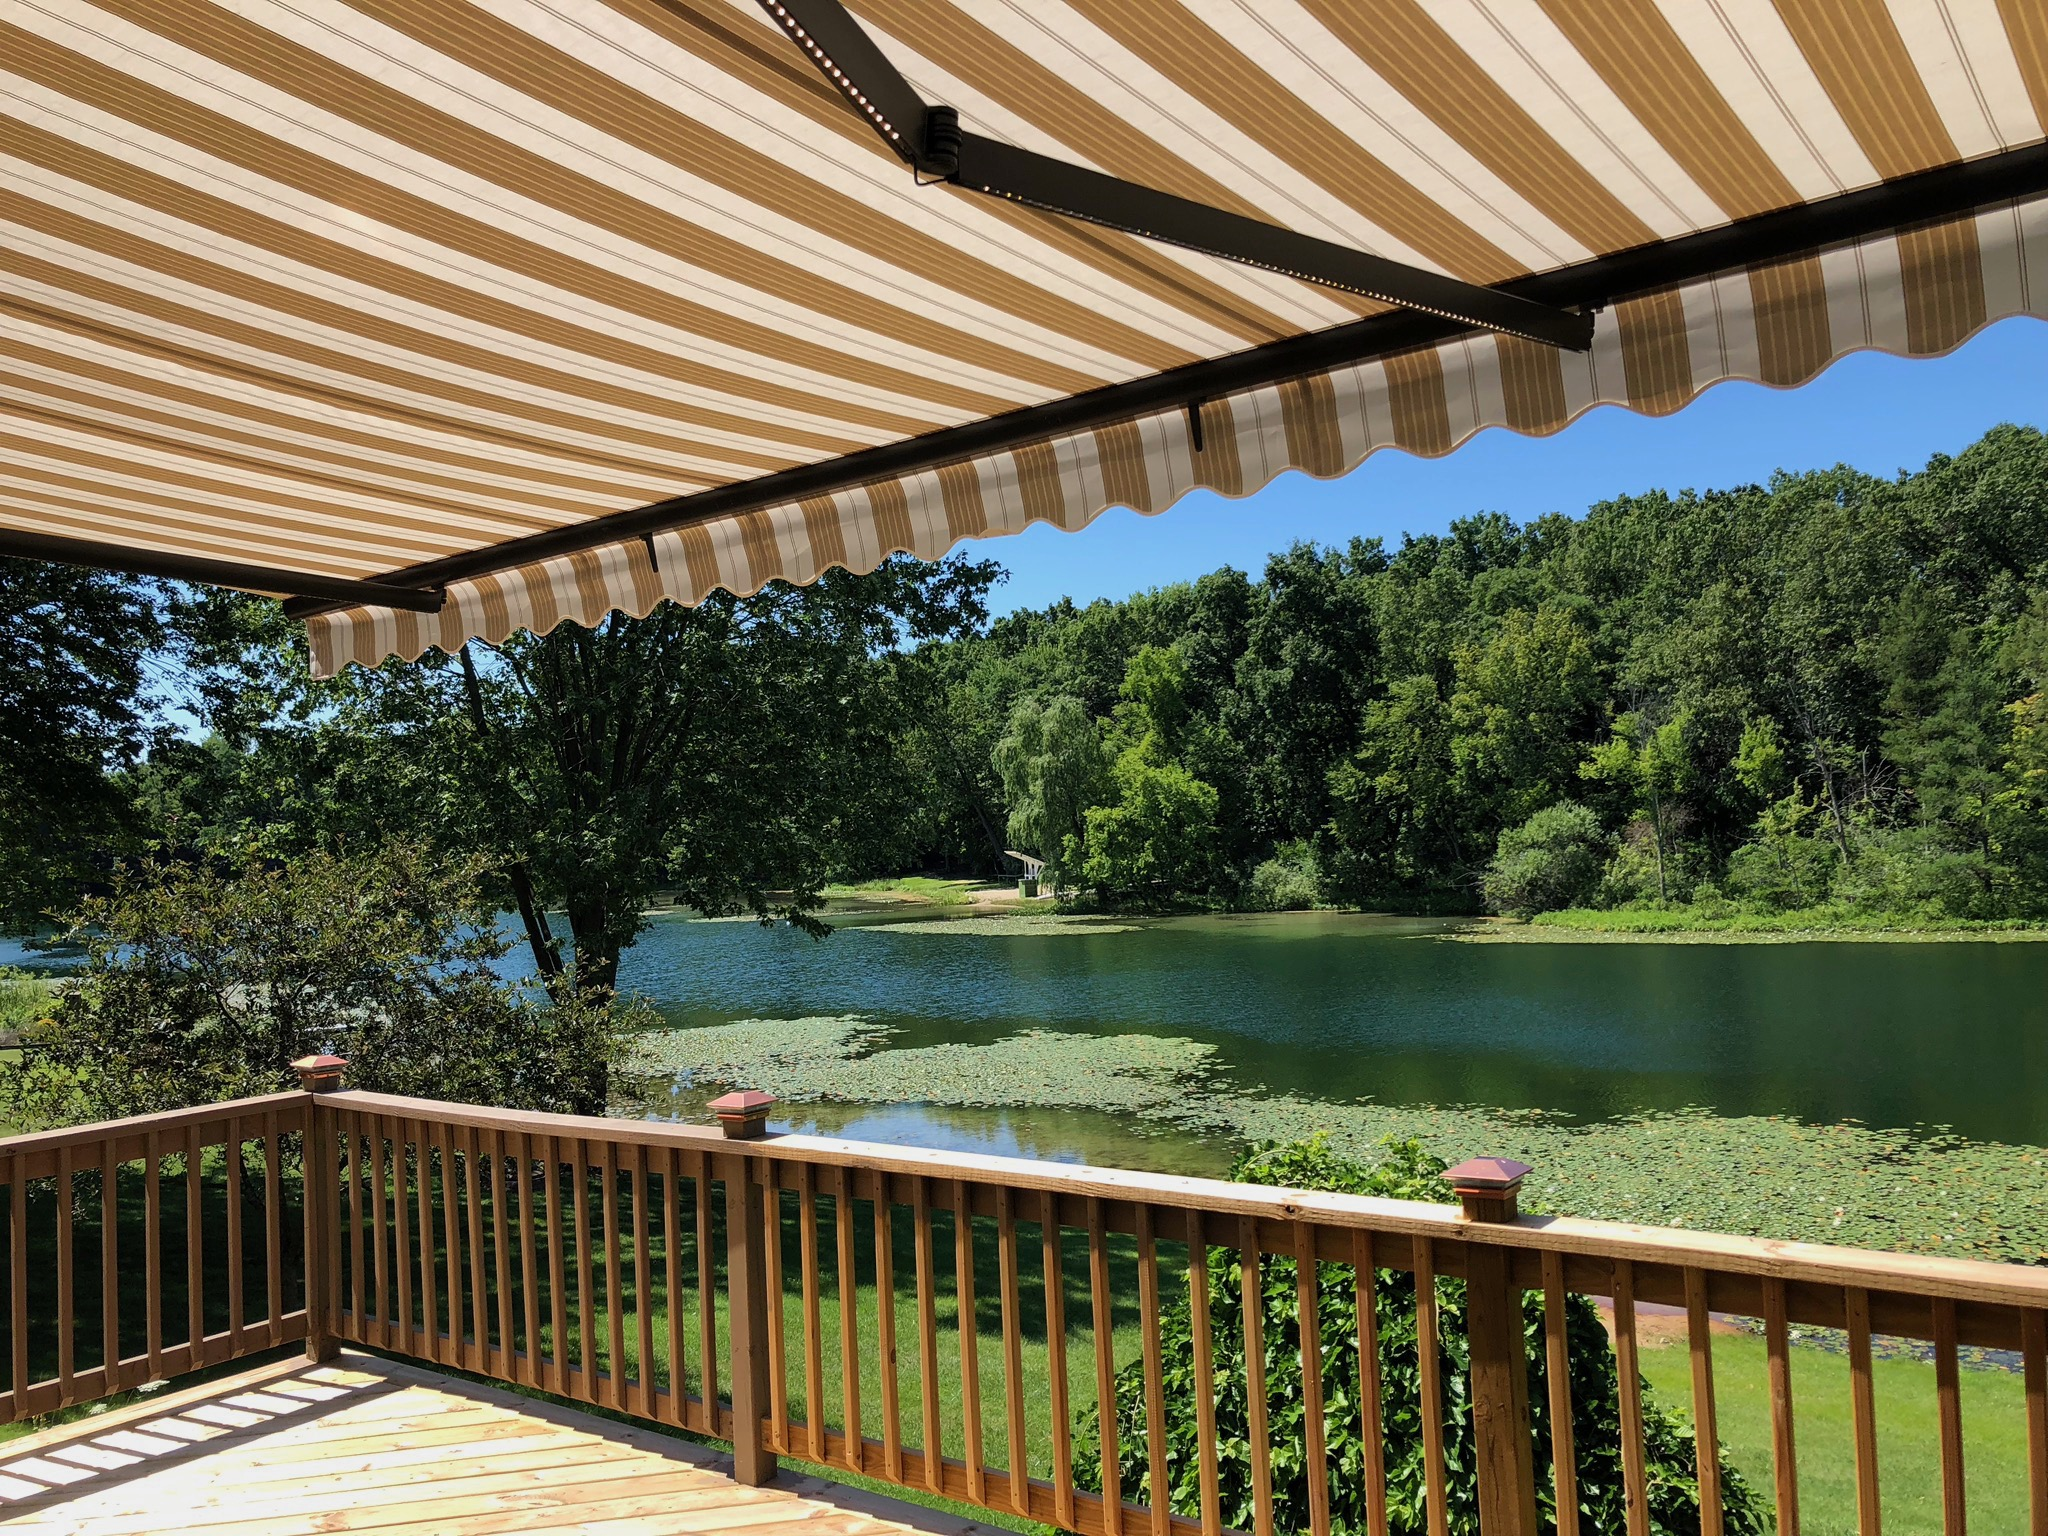 Retractable awnings New Jersey